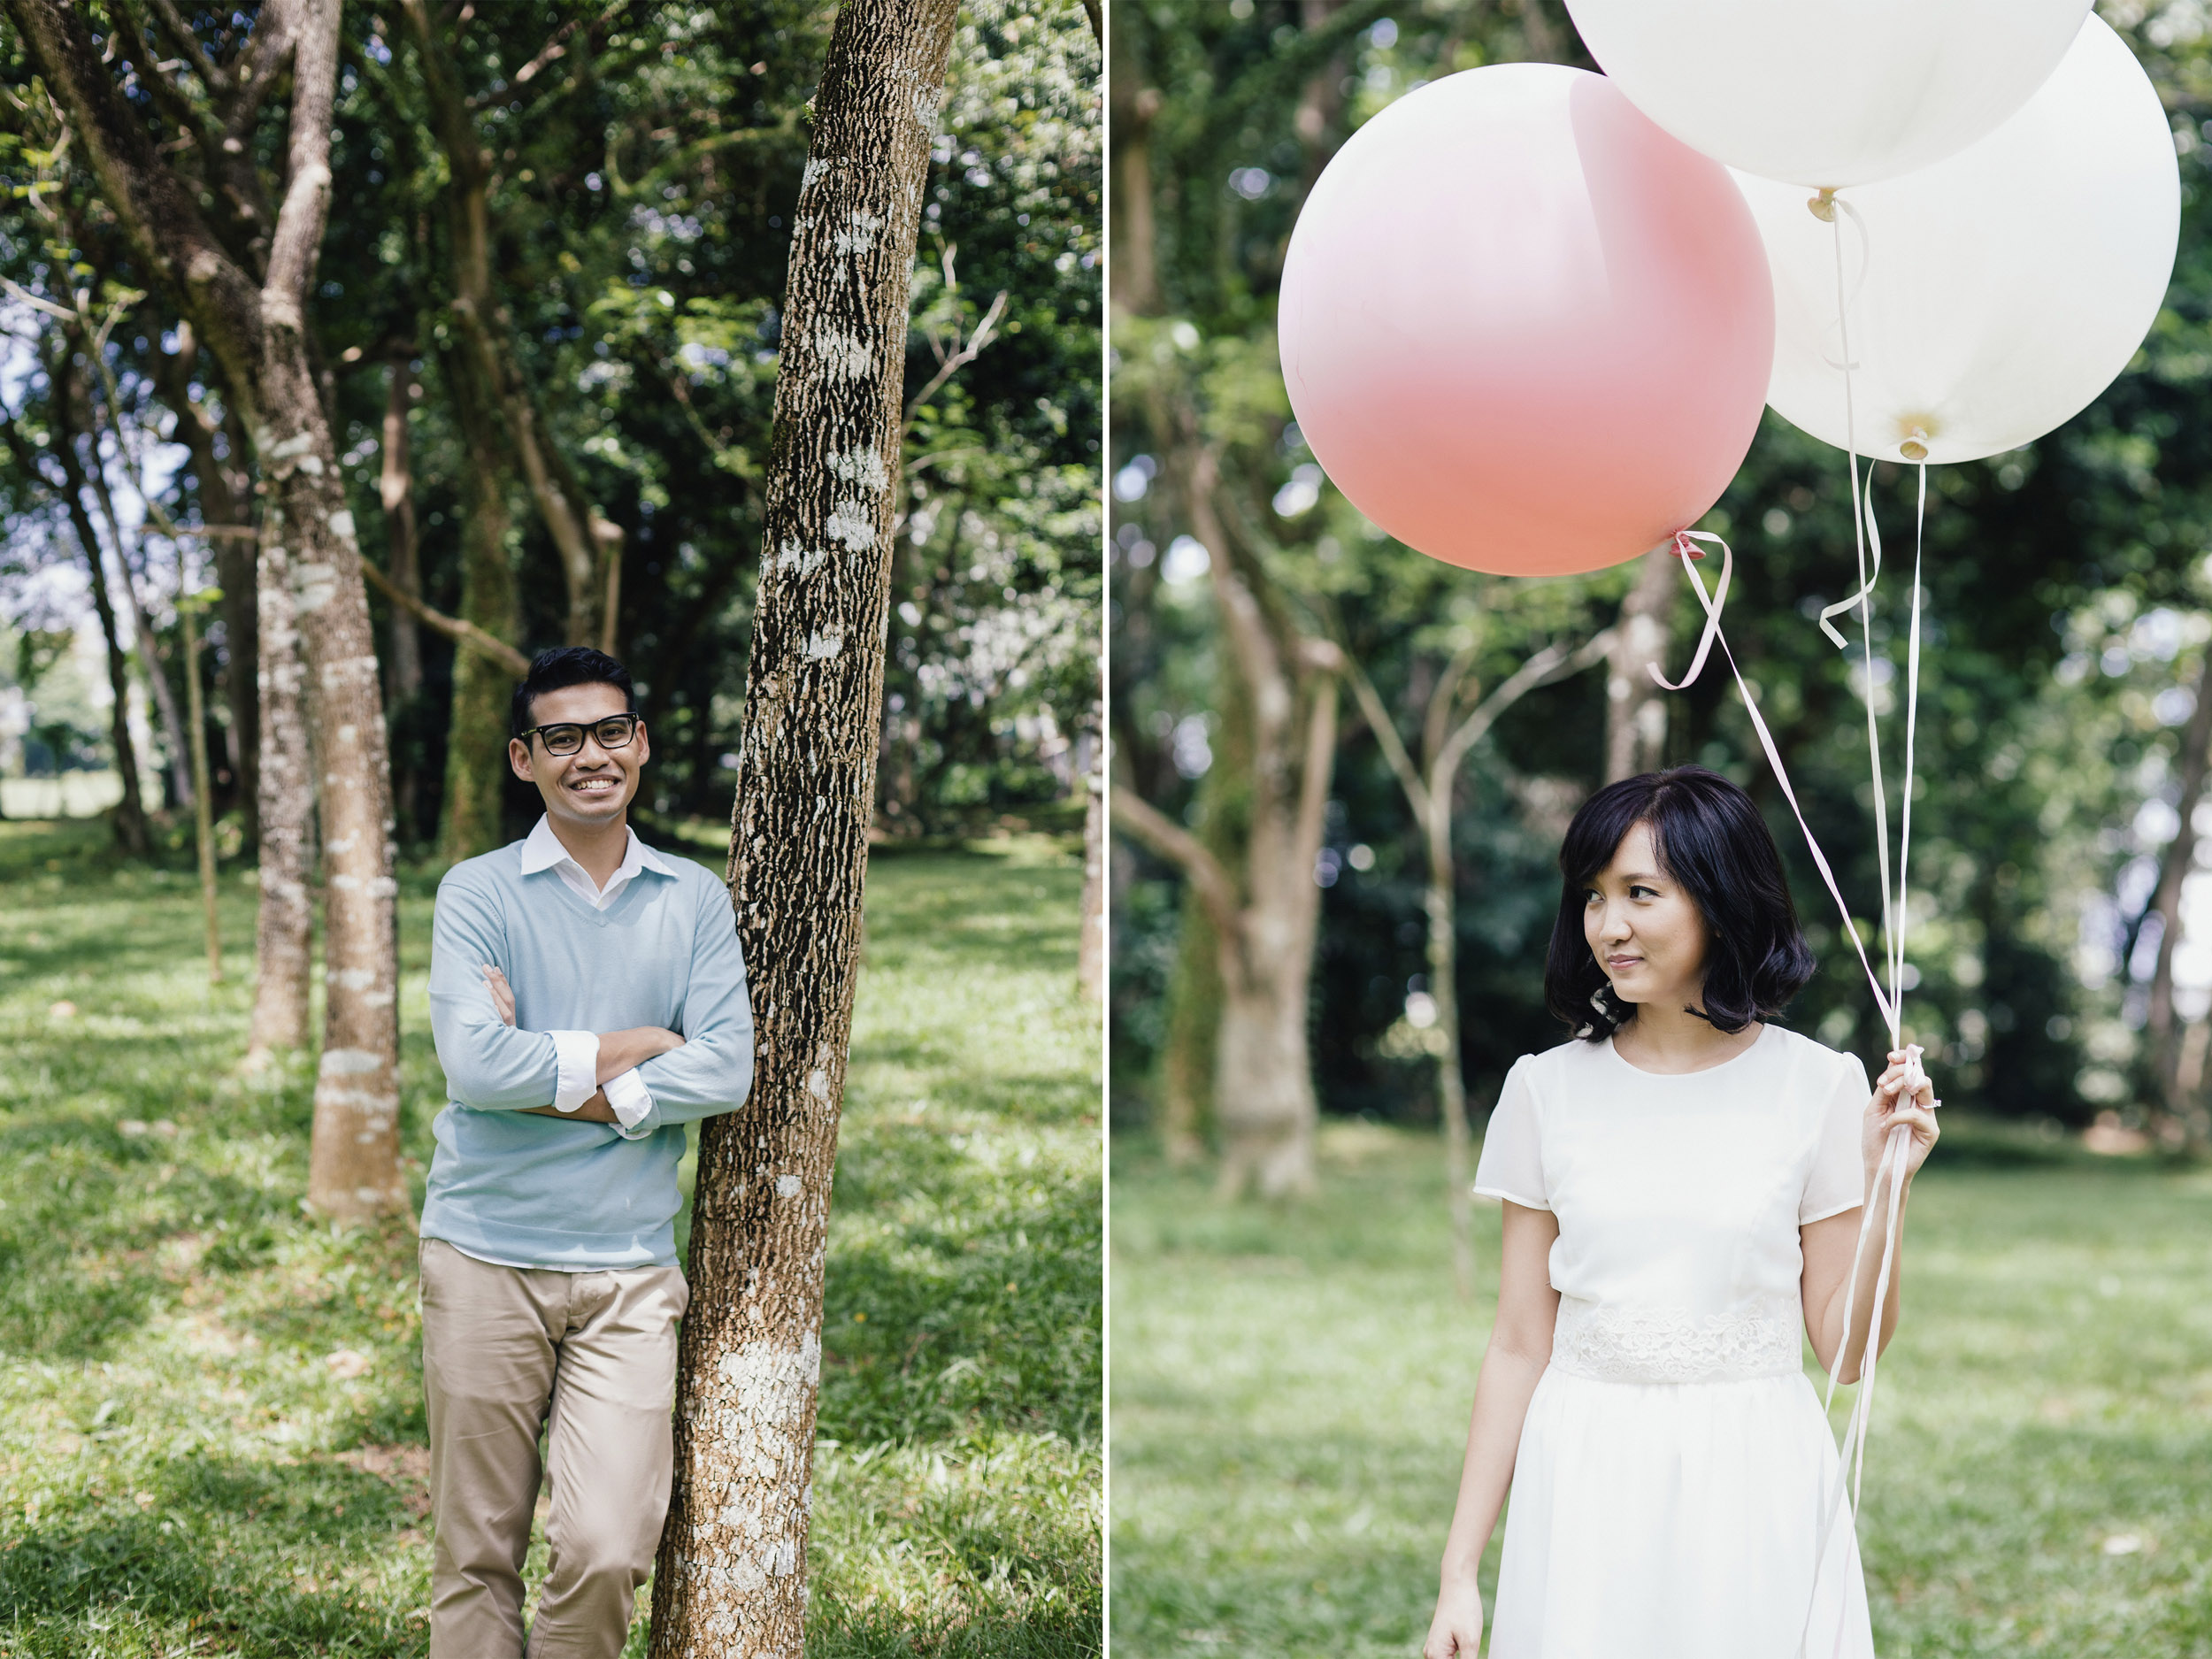 singapore-wedding-photographer-wemadethese-adib-mizah-2012-sessions-004.jpg